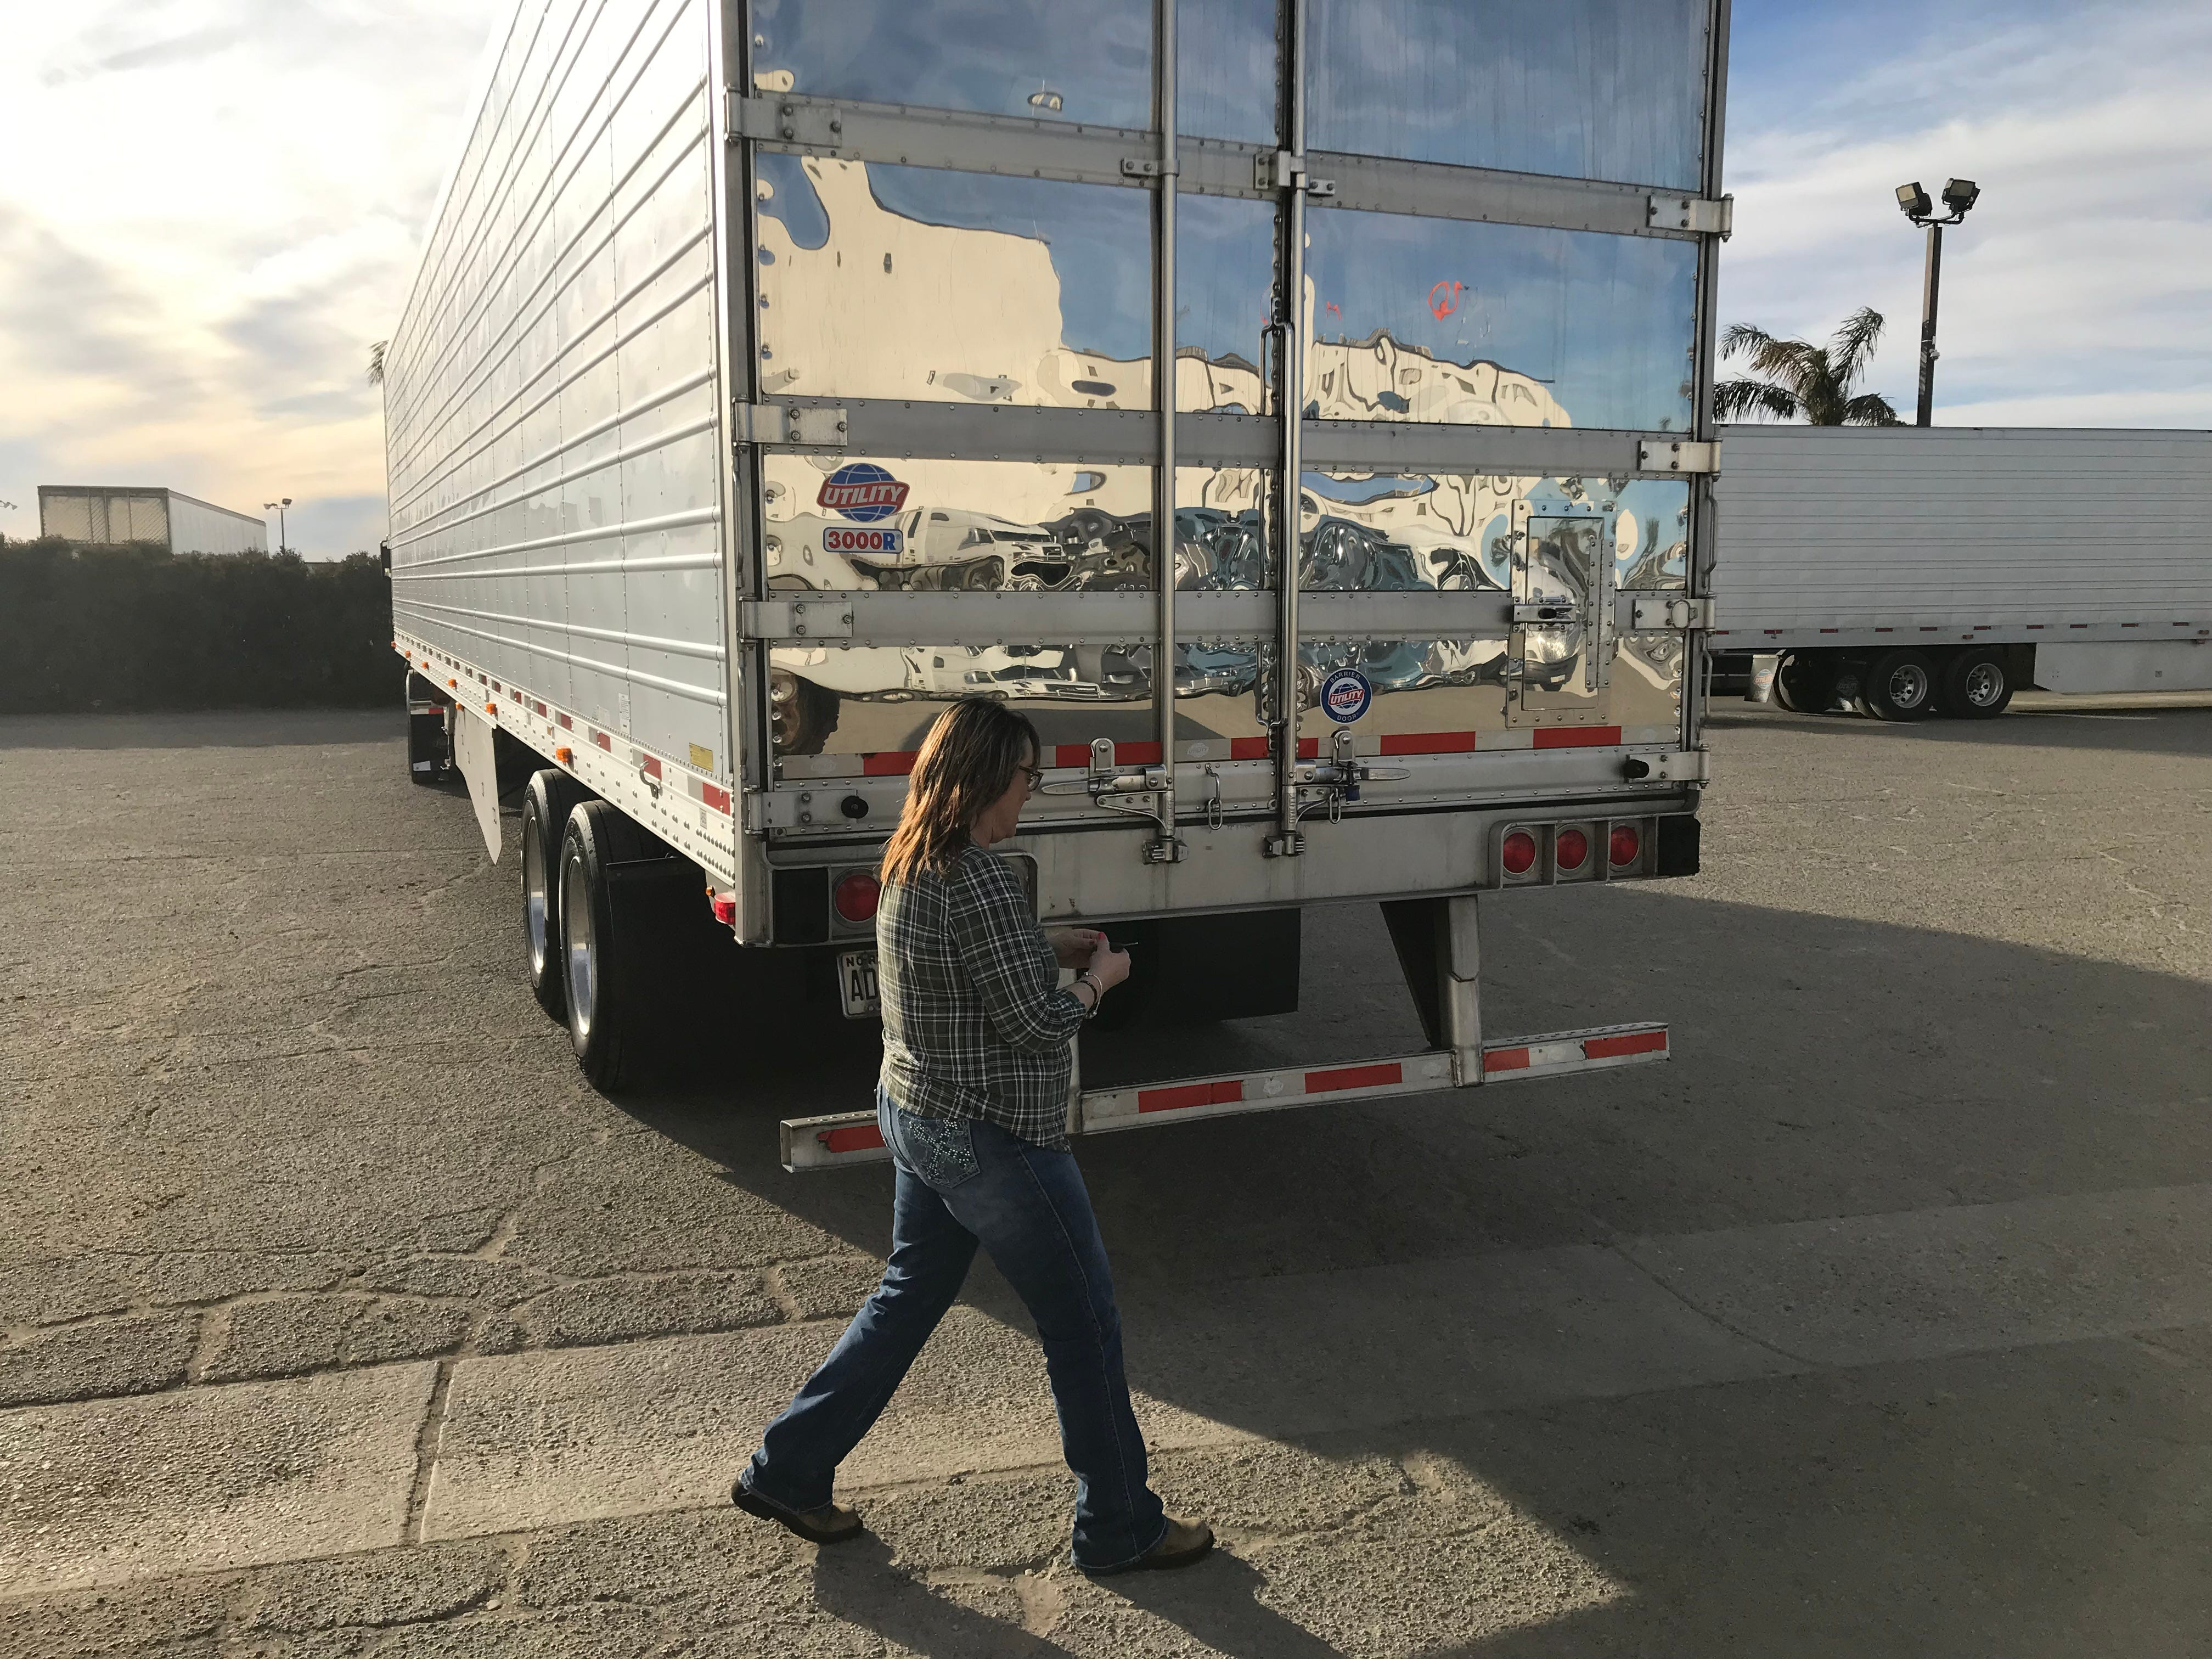 Ingrid Brown walks around back to open the trailer of her big rig